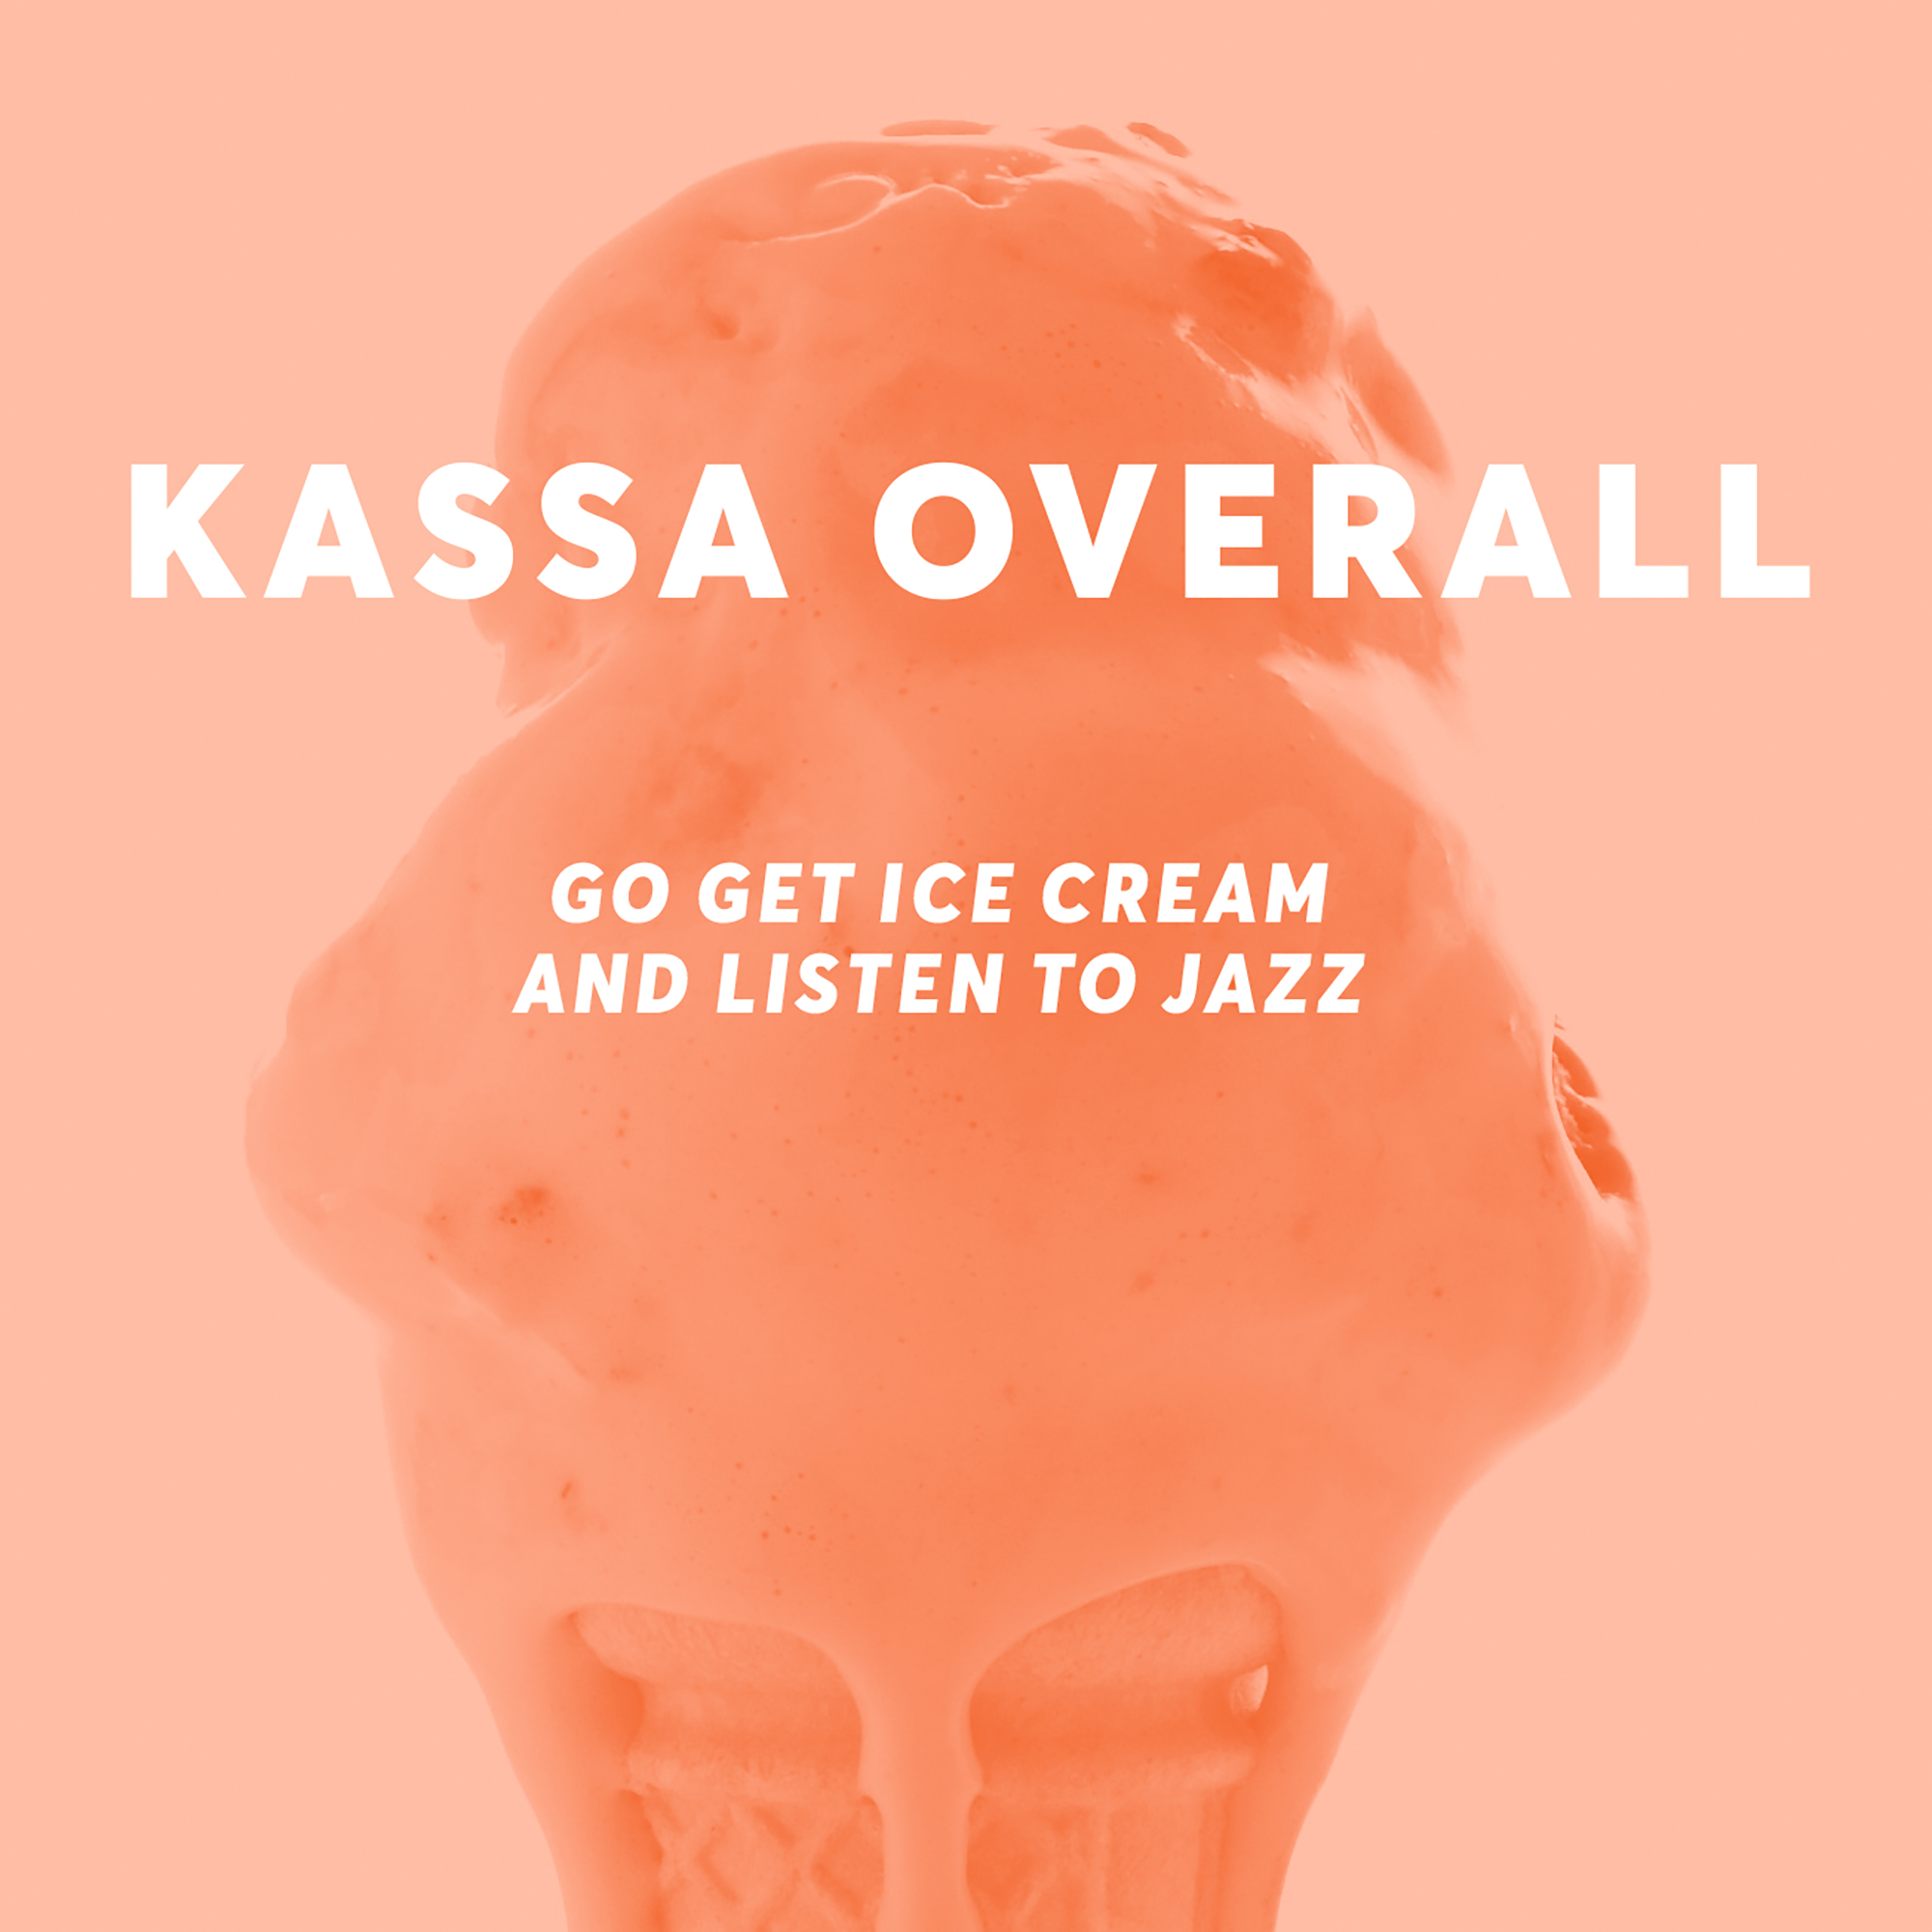 "- ""One of the few genuine-sounding, full-scope amalgams of contemporary hip-hop and jazz to surface in recent years."" - Giovanni Russonello, NYTimes""Such a nice surprise hearing this record."" - Gilles Peterson""My bro Kassa Overall's new album is 👍🏾"" - Jon Batiste""Go Get Ice Cream and Listen to Jazz, presents a startlingly cohesive array of compositions and production styles."" - JAZZIZ"